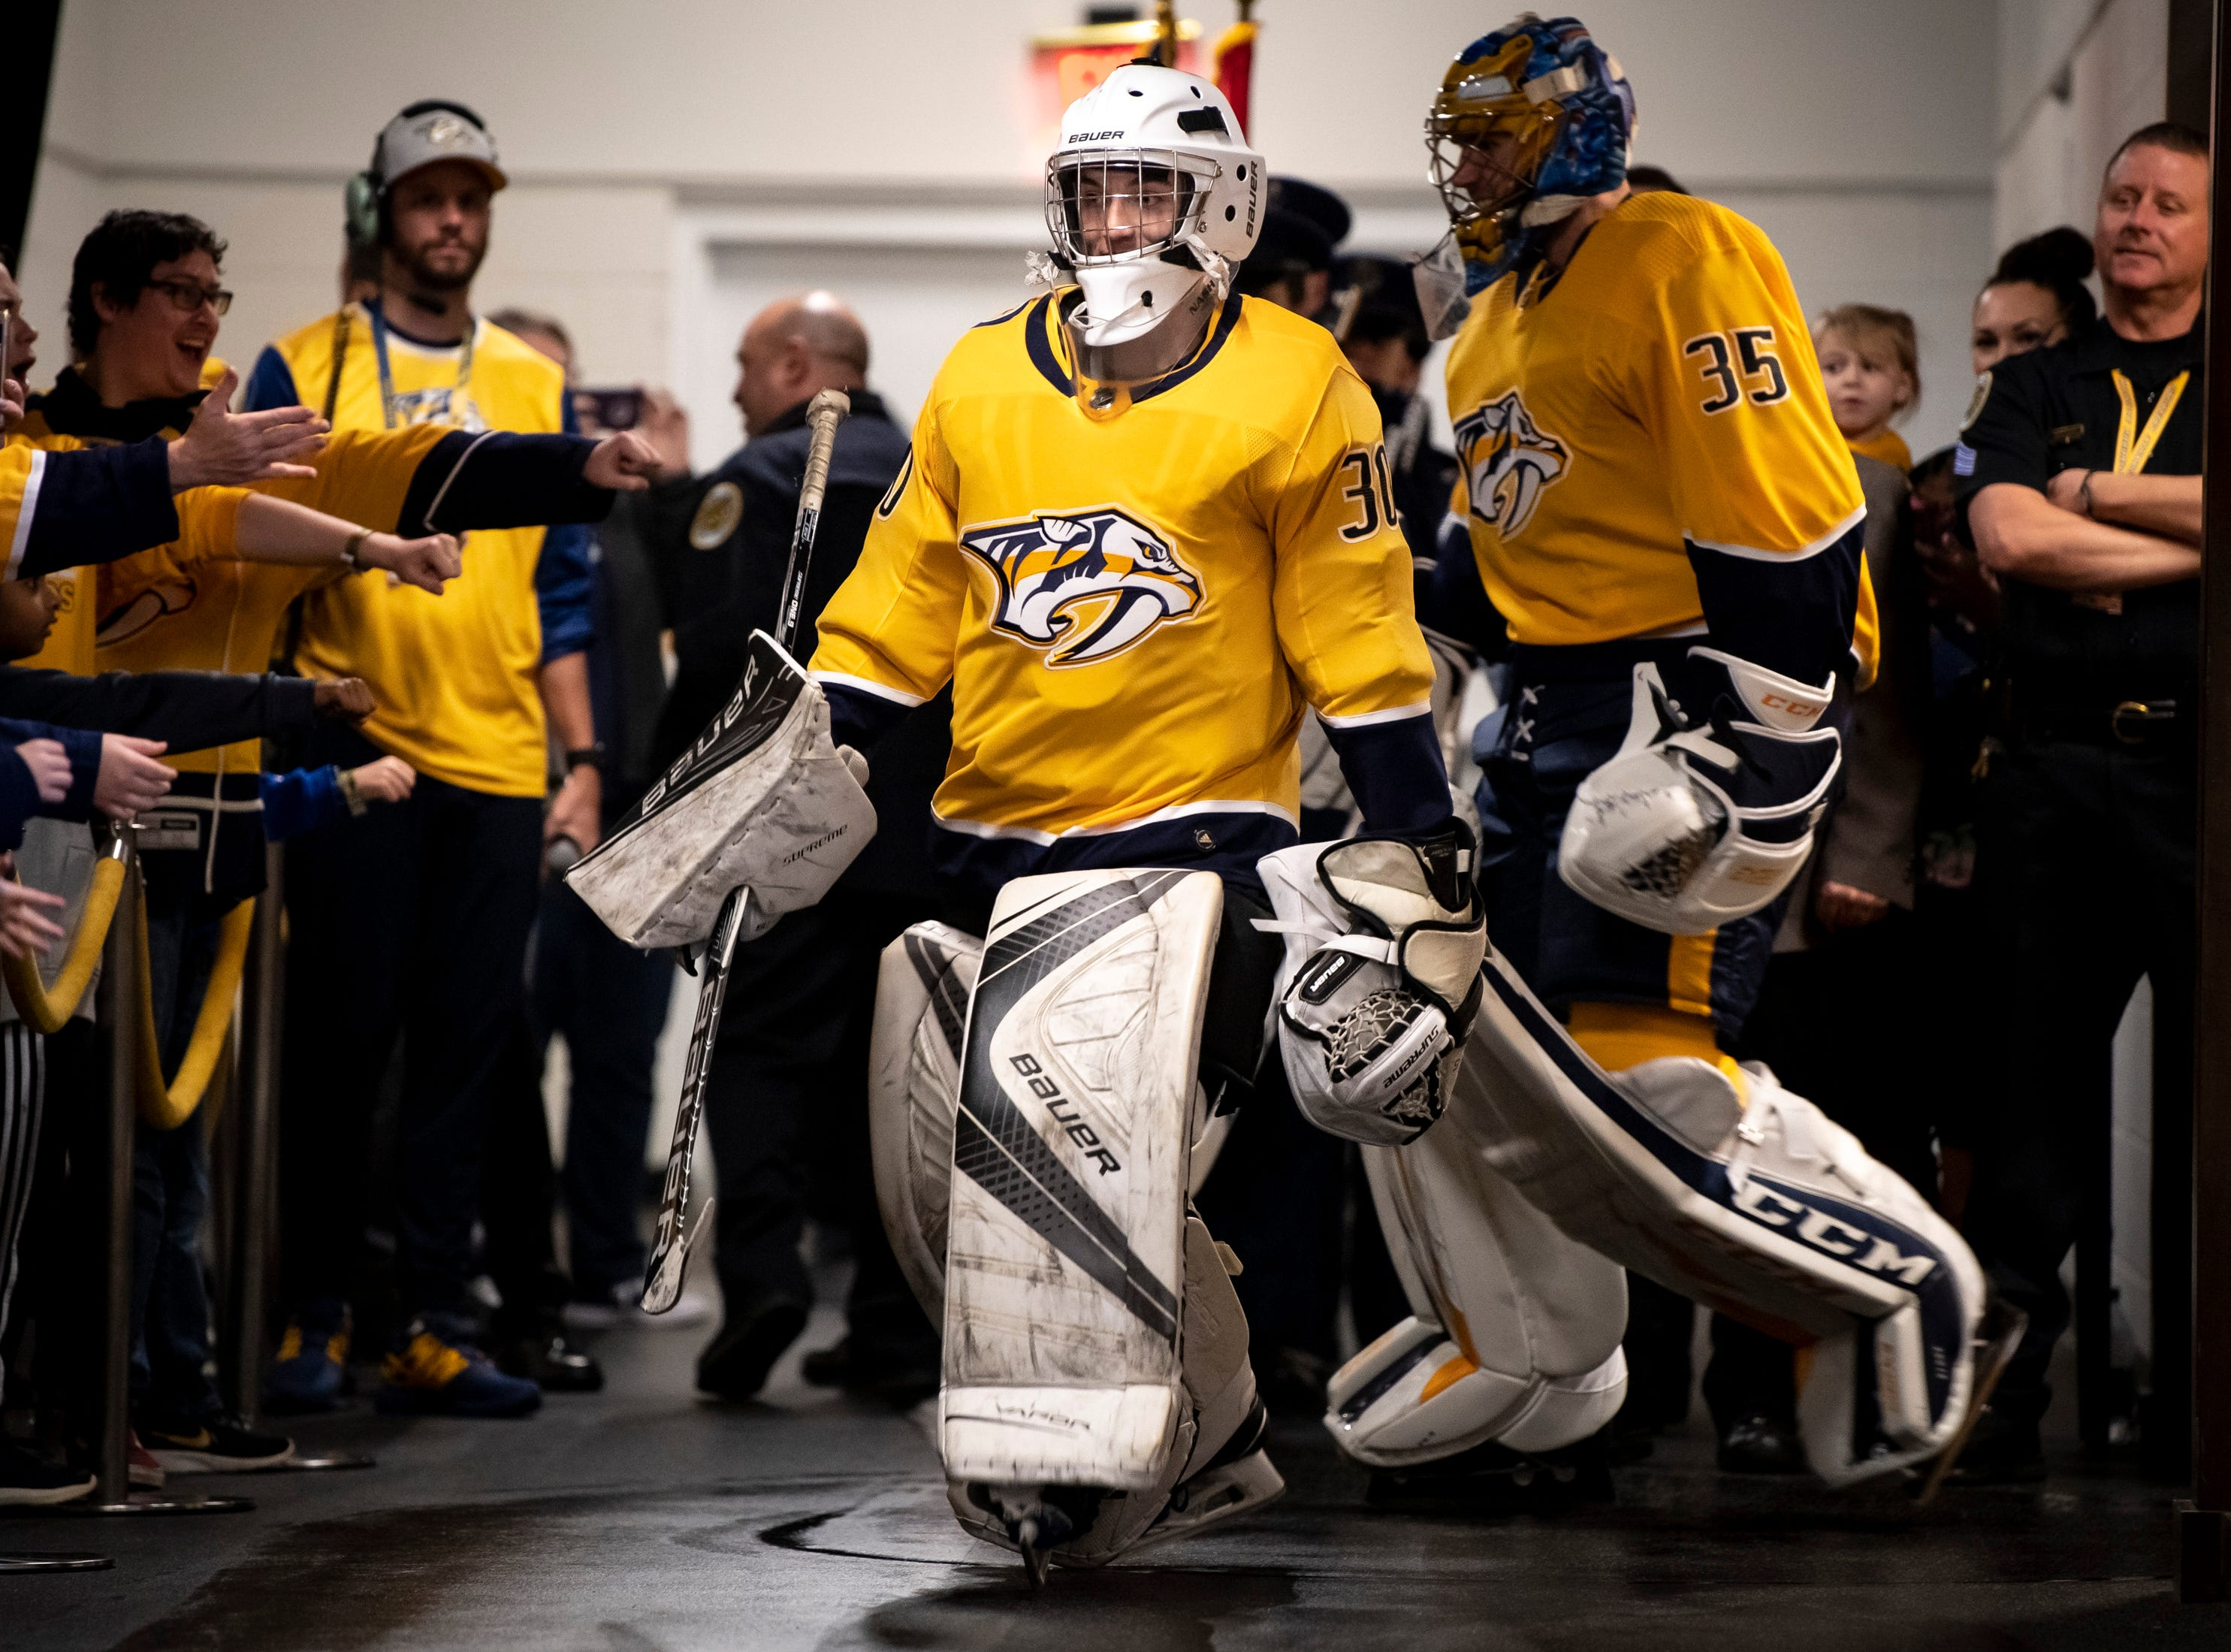 Make-A-Wish recipient and Ionia resident Jacob Piros heads out to the ice wearing a Predators jersey followed by Nashville Predators goaltender Pekka Rinne (35) before a game between the Nashville Predators and the Winnipeg Jets at Bridgestone Arena in Nashville, Tenn., Thursday, Jan. 17, 2019.